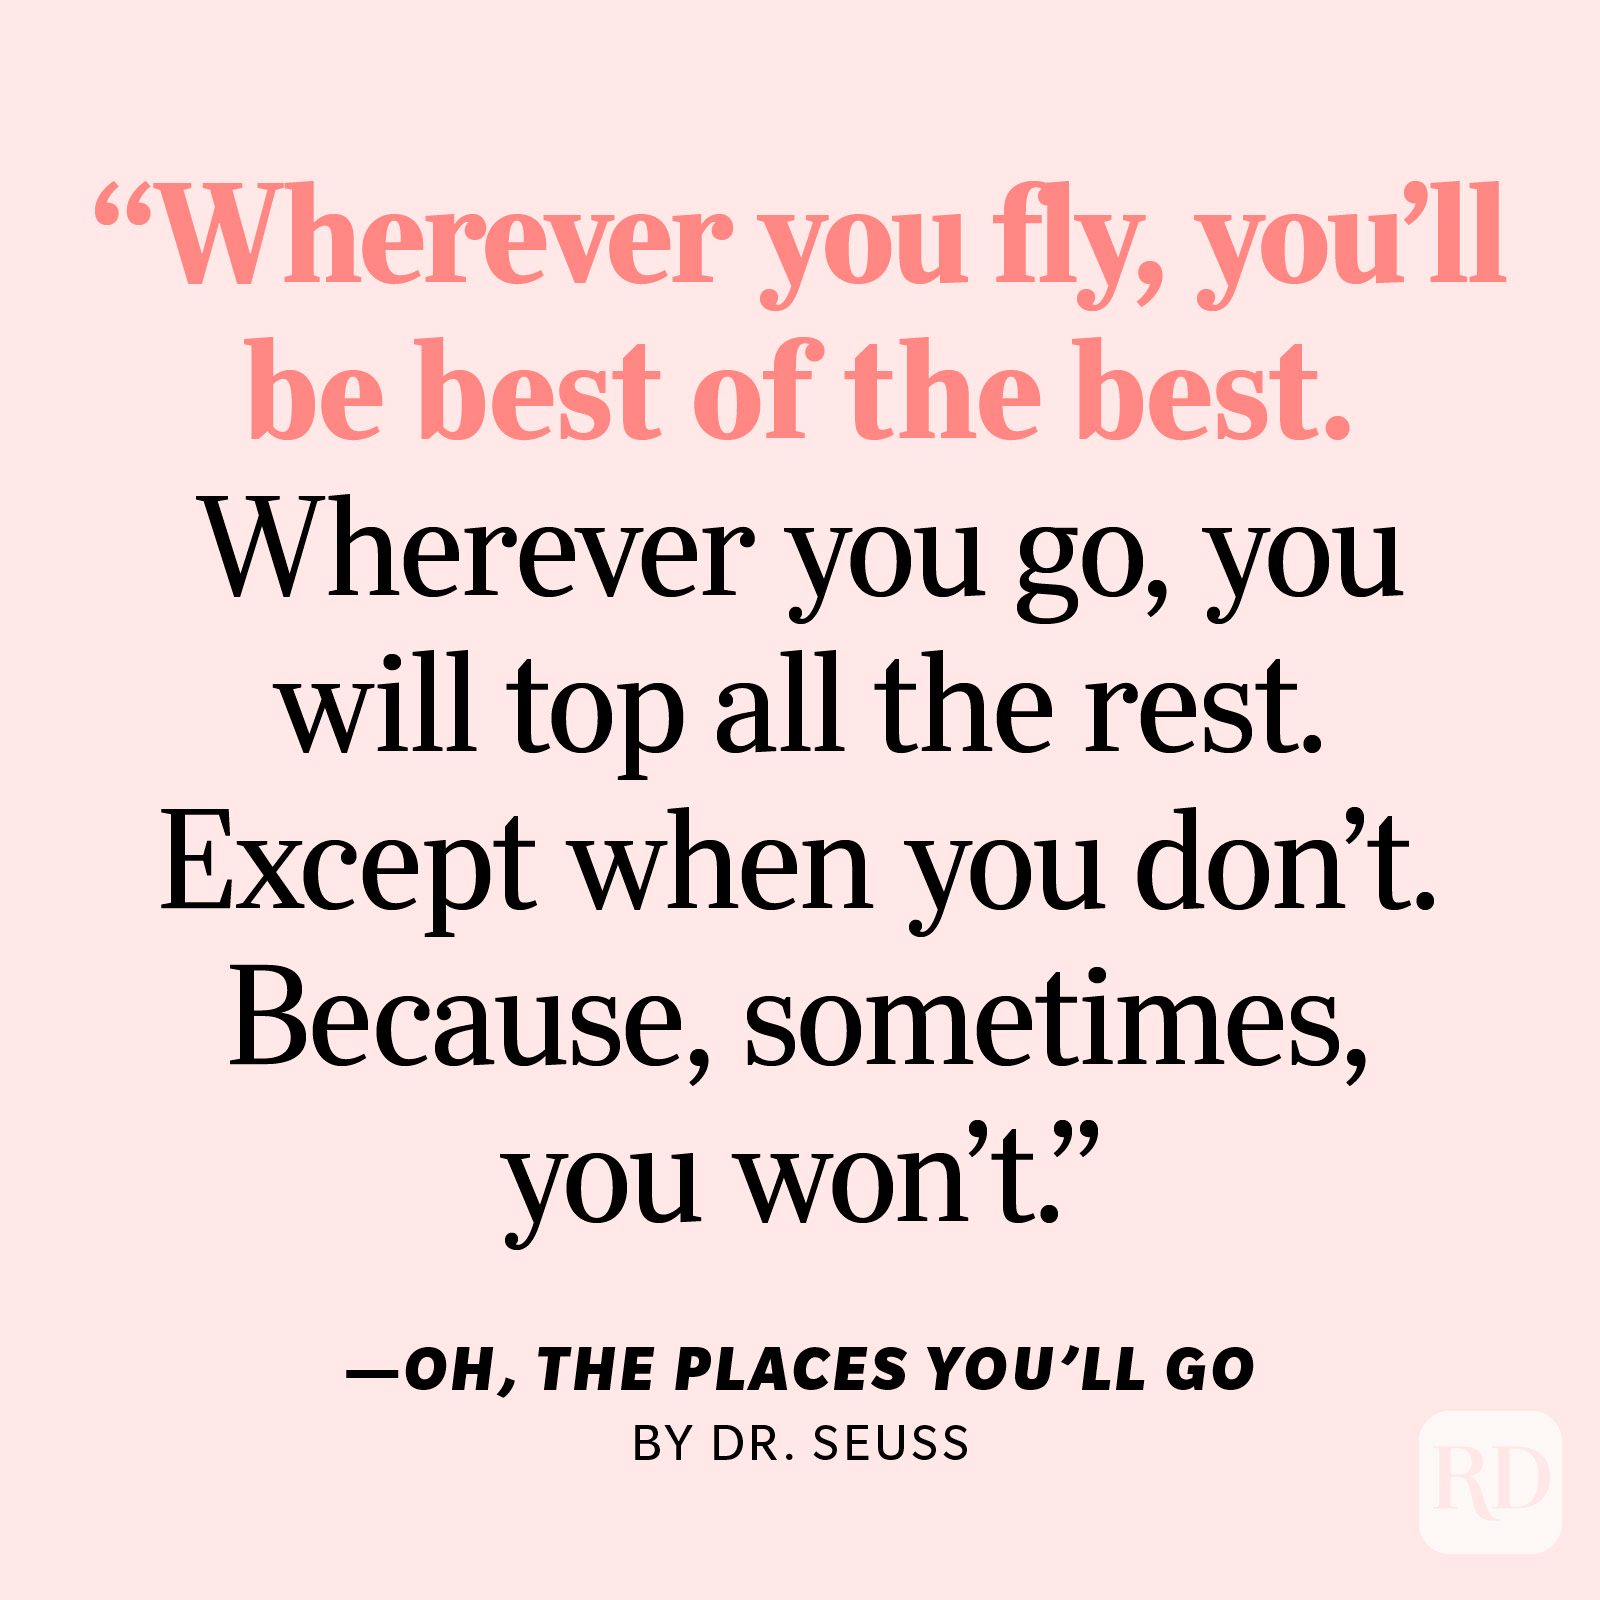 """Oh! The Places You'll Go by Dr. Seuss """"Wherever you fly, you'll be best of the best. Wherever you go, you will top all the rest. Except when you don't. Because, sometimes, you won't. I'm sorry to say so but, sadly, it's true that Bang-ups and Hang-ups can happen to you."""""""